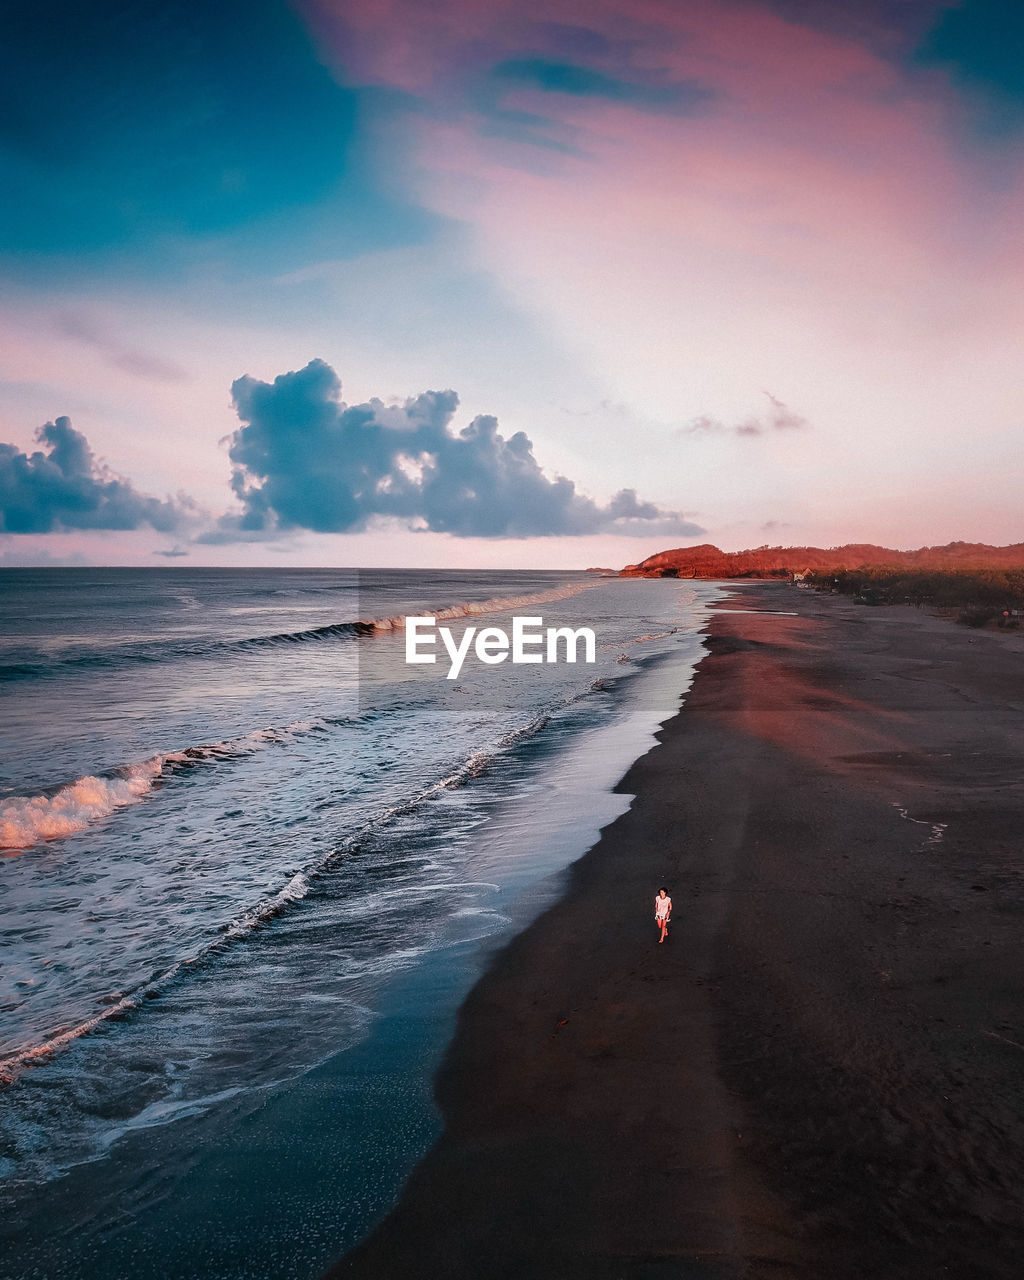 water, sea, land, sky, beach, cloud - sky, beauty in nature, sunset, scenics - nature, nature, wave, people, sport, surfing, lifestyles, motion, real people, leisure activity, outdoors, horizon over water, power in nature